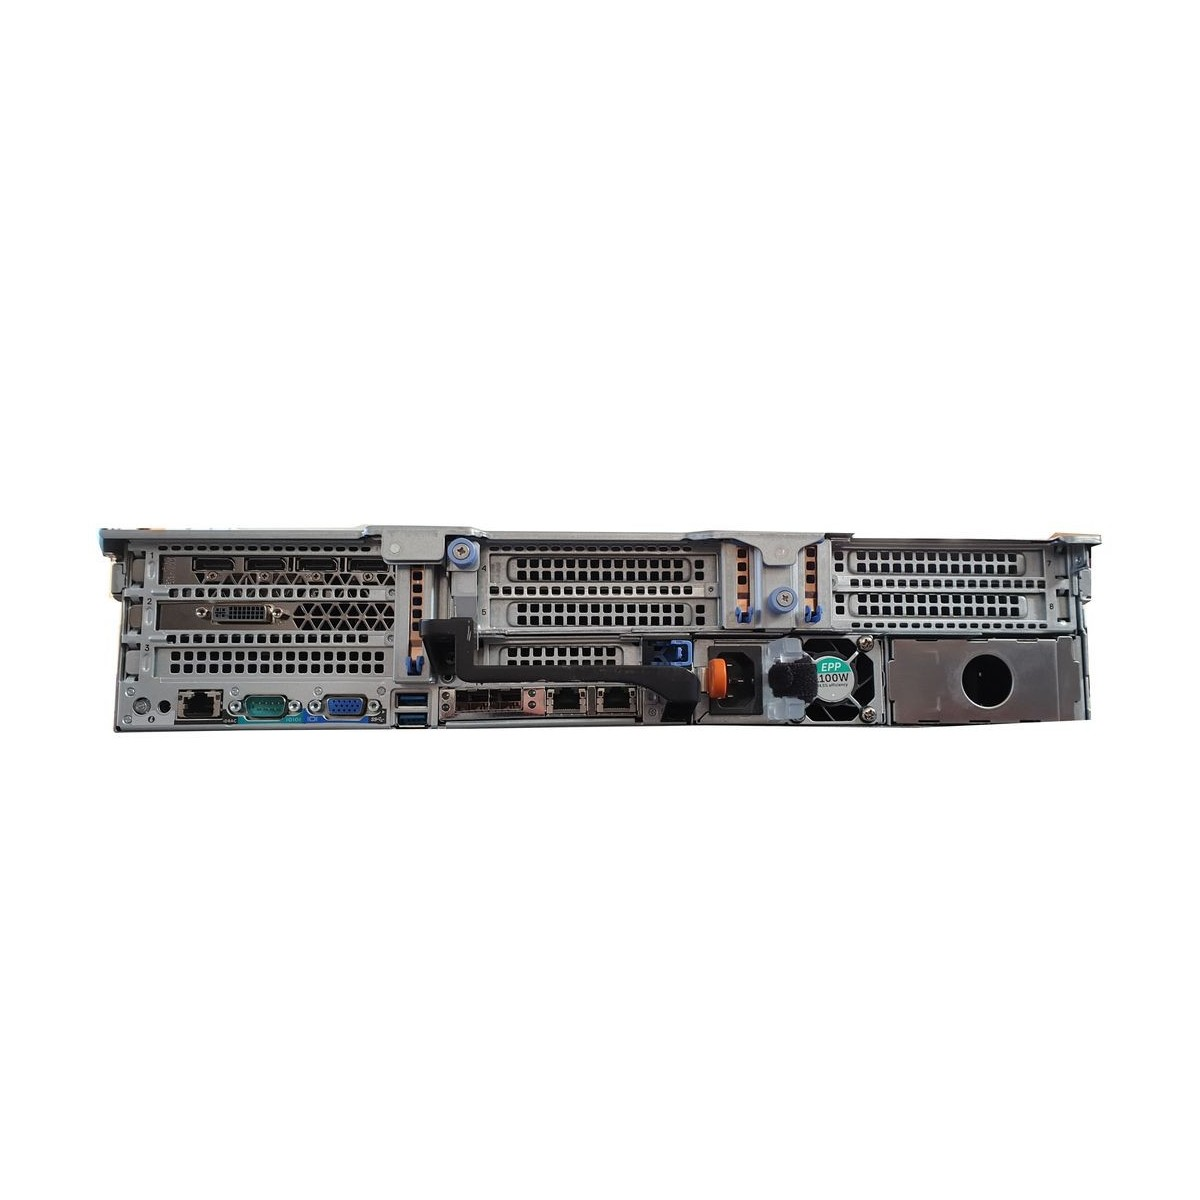 HP DL385 G6 2x2,40GHZ SIX 32GB 3x73GB SAS